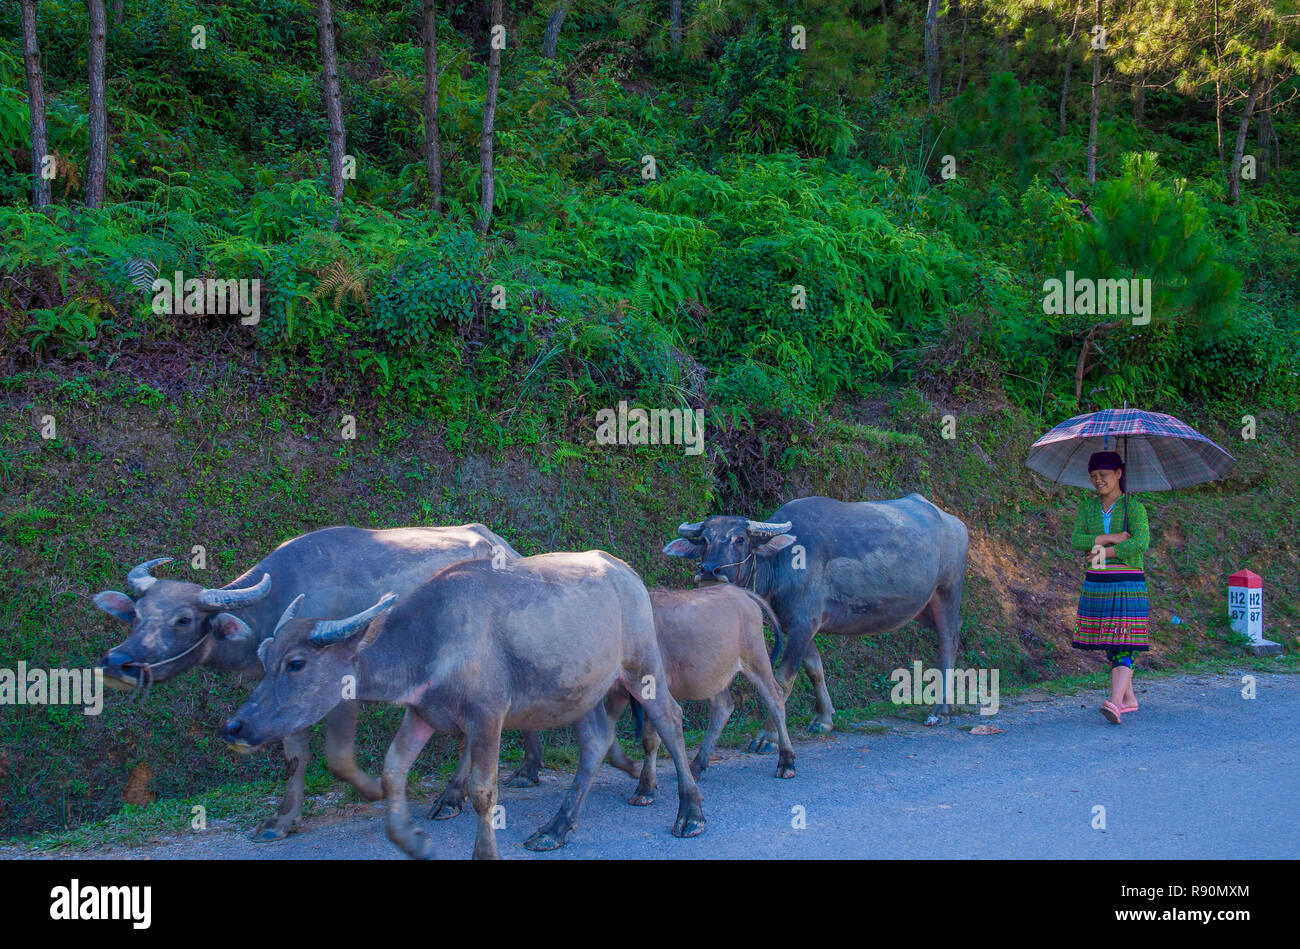 HA GIANG , VIETNAM - SEP 15 : Vietnamese farmer in the countrside near Ha Giang Vietnam on September 15 2018. nearly 80 percent of the population of V Stock Photo